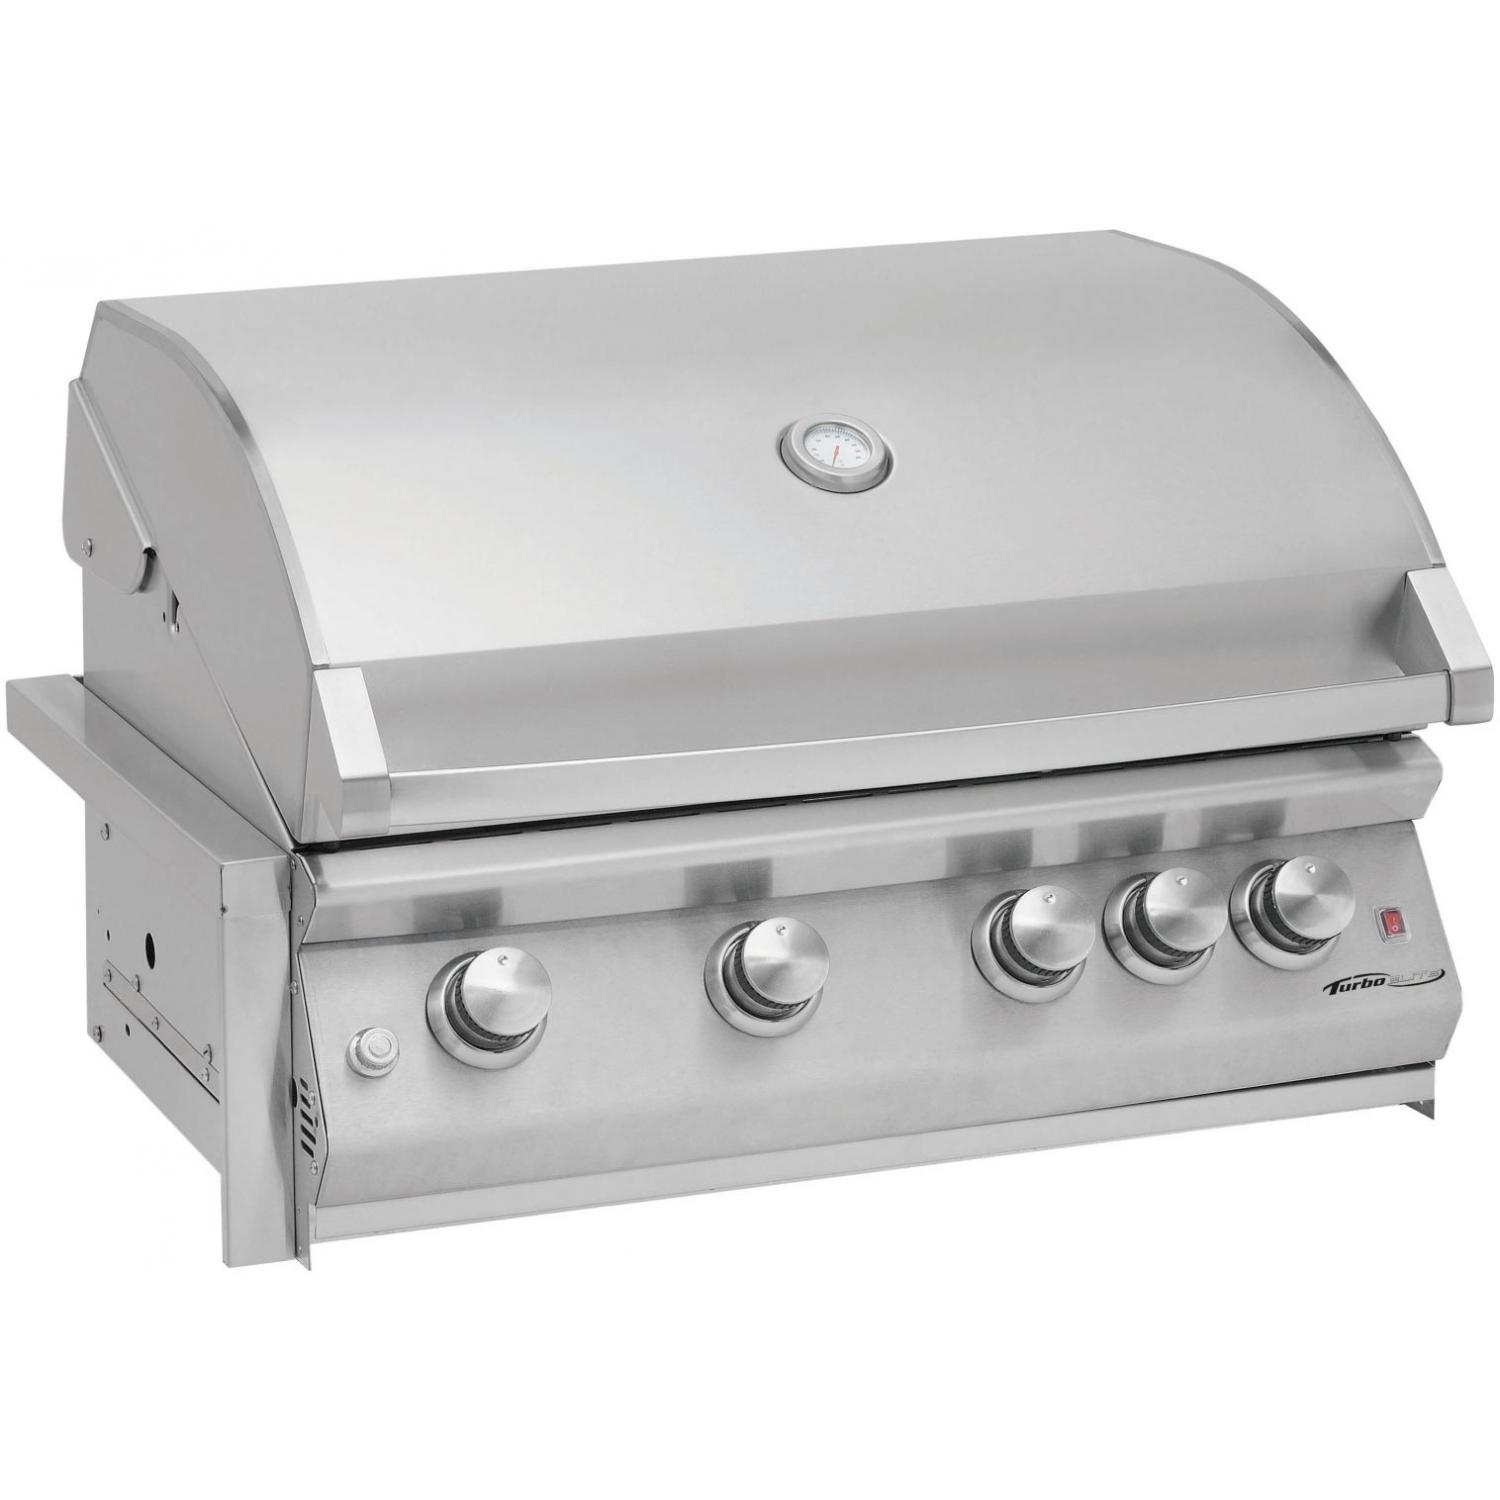 Barbeques Galore Turbo Elite By Barbeques Galore 32-inch Built-in Propane Gas Grill at Sears.com